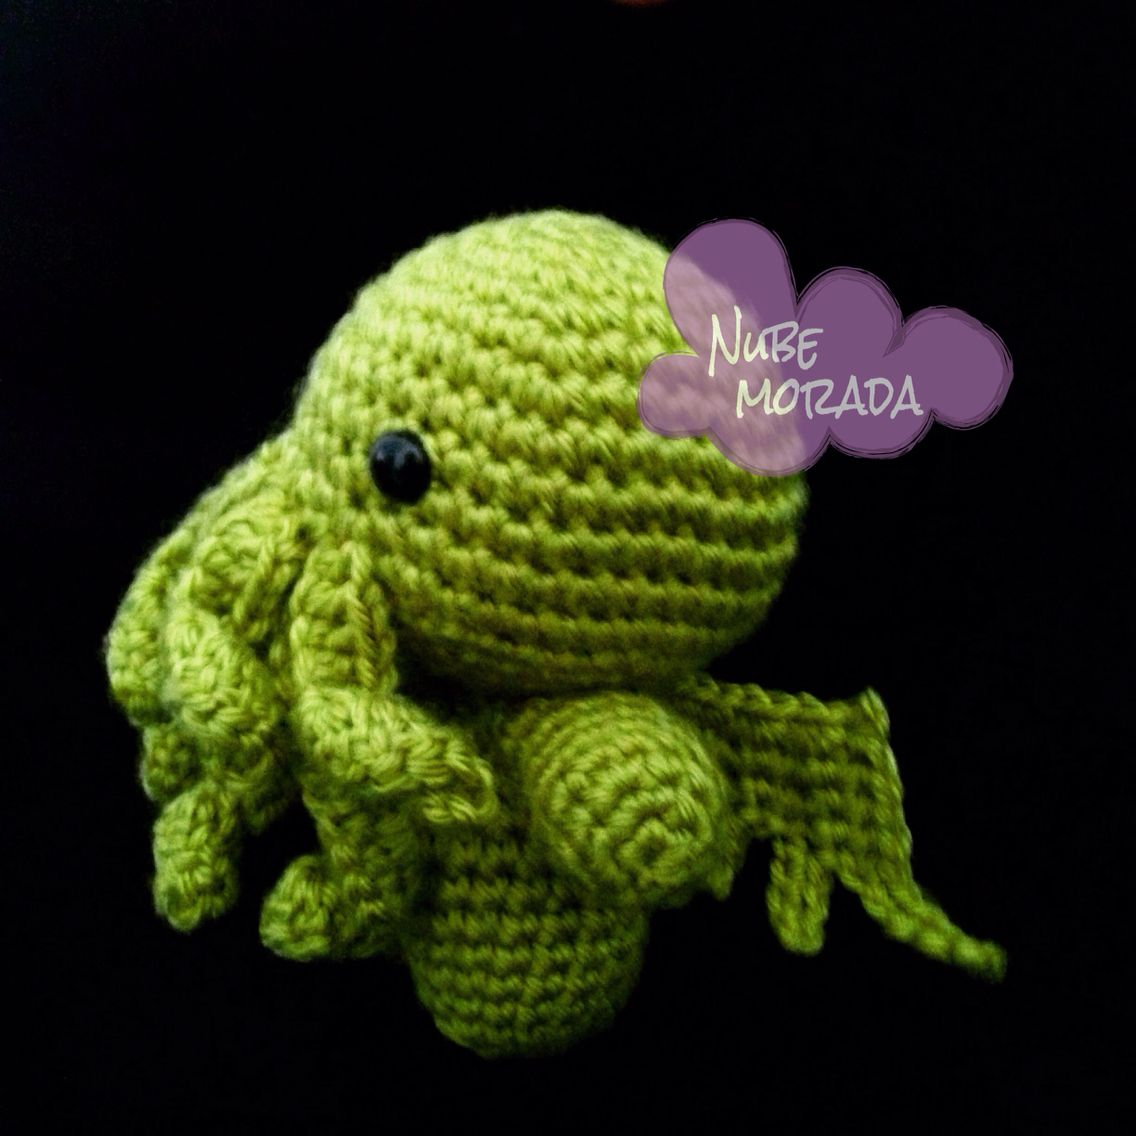 Baby cthulhu crochet doll pattern by ruralrebellion amigurumi baby cthulhu crochet doll pattern by ruralrebellion bankloansurffo Choice Image